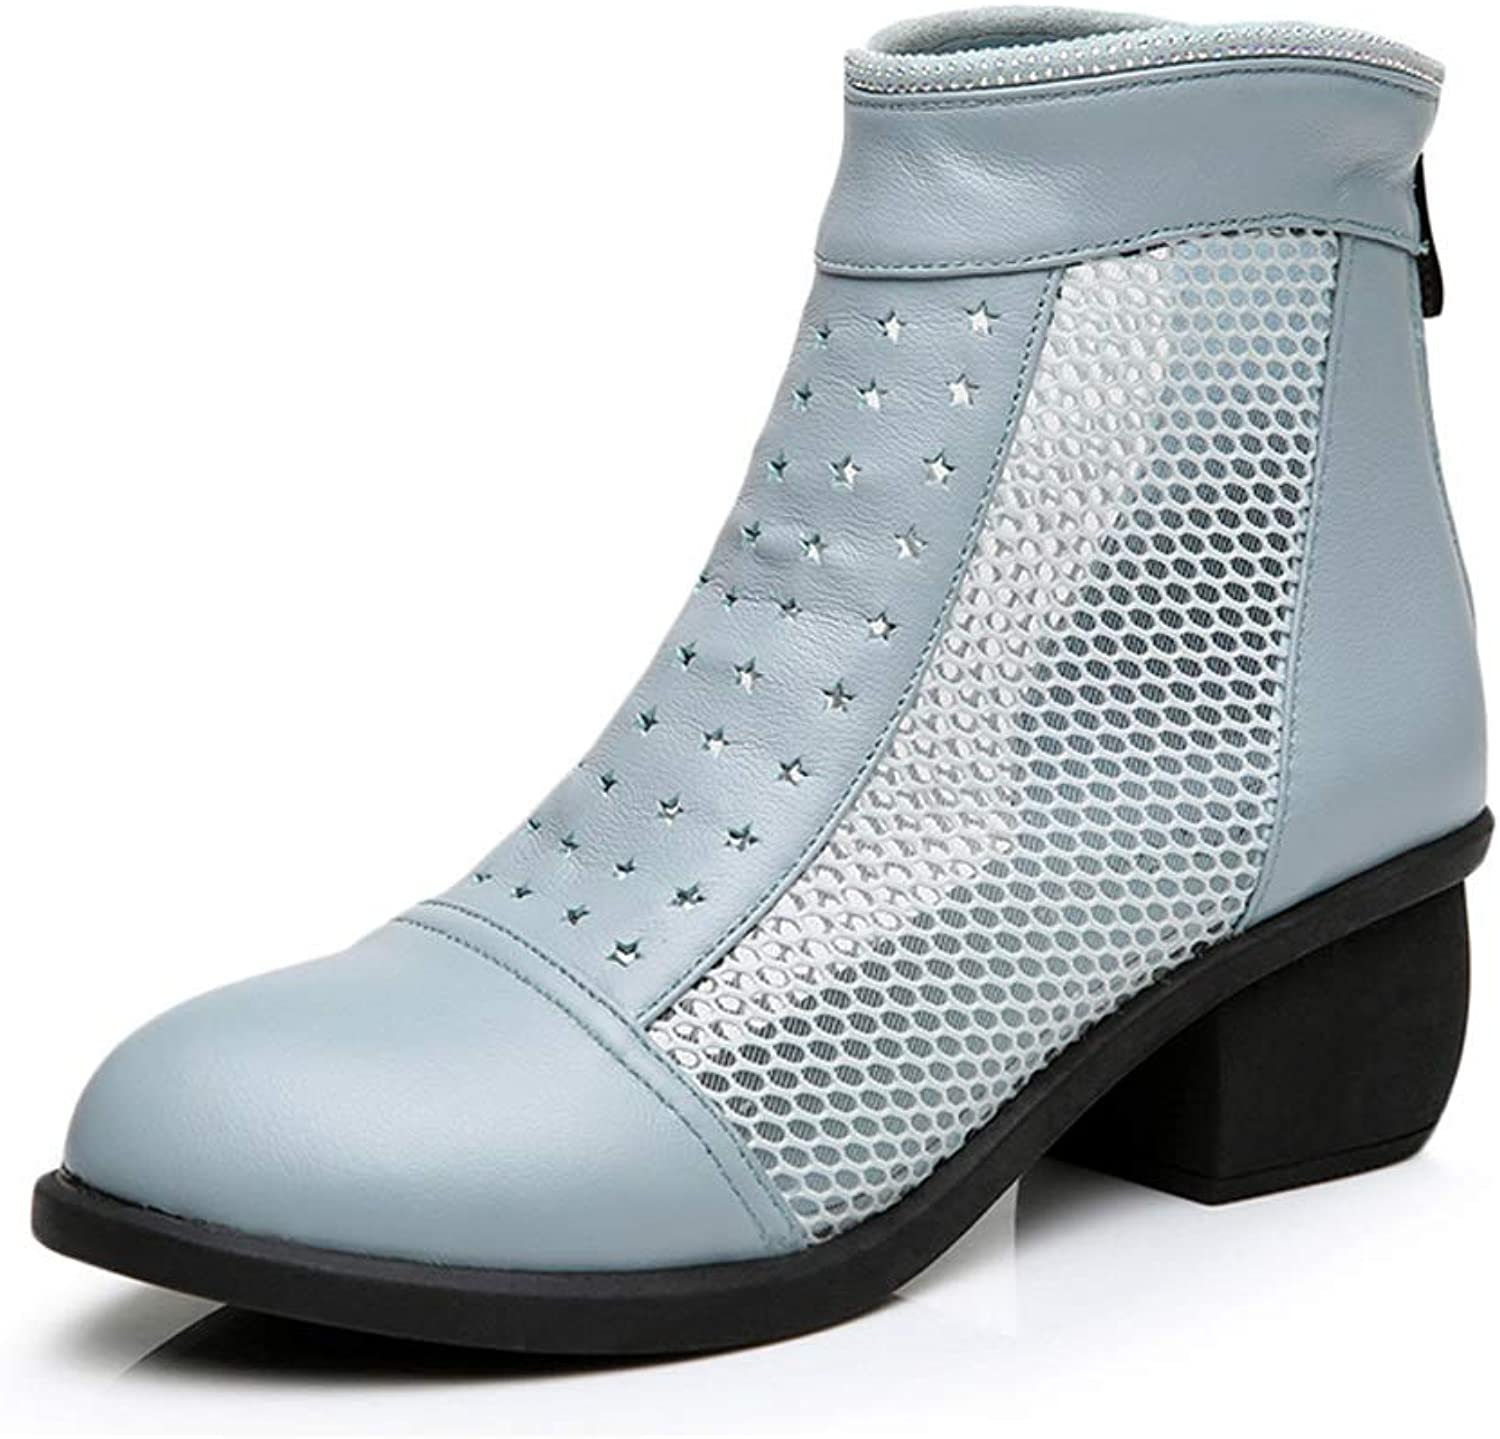 TARSHIN Net Boots Female Openwork Boots Spring and Autumn Women's Thick with Single Boots Mesh shoes Women's shoes